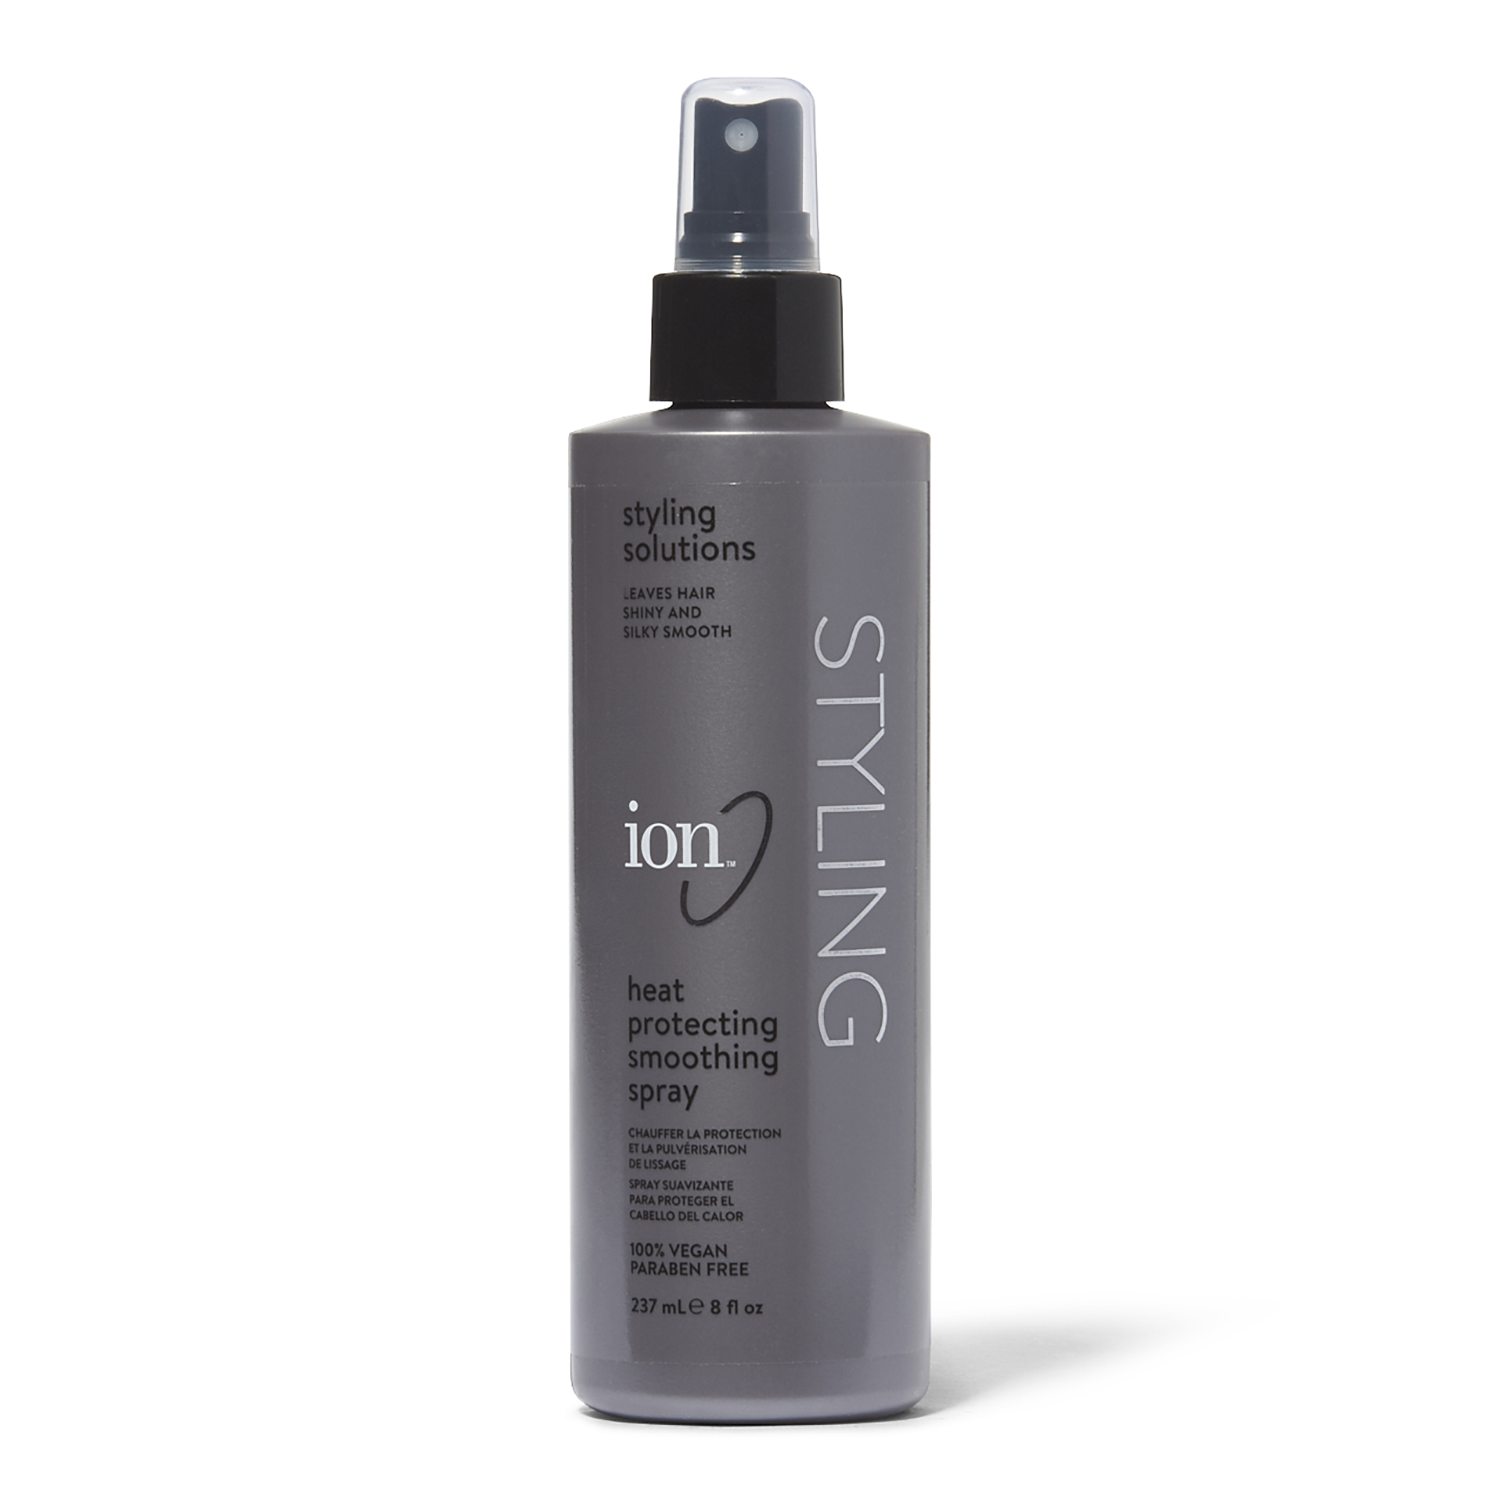 hair products for heat styling ion heat protecting smoothing spray 3653 | SBS 302272